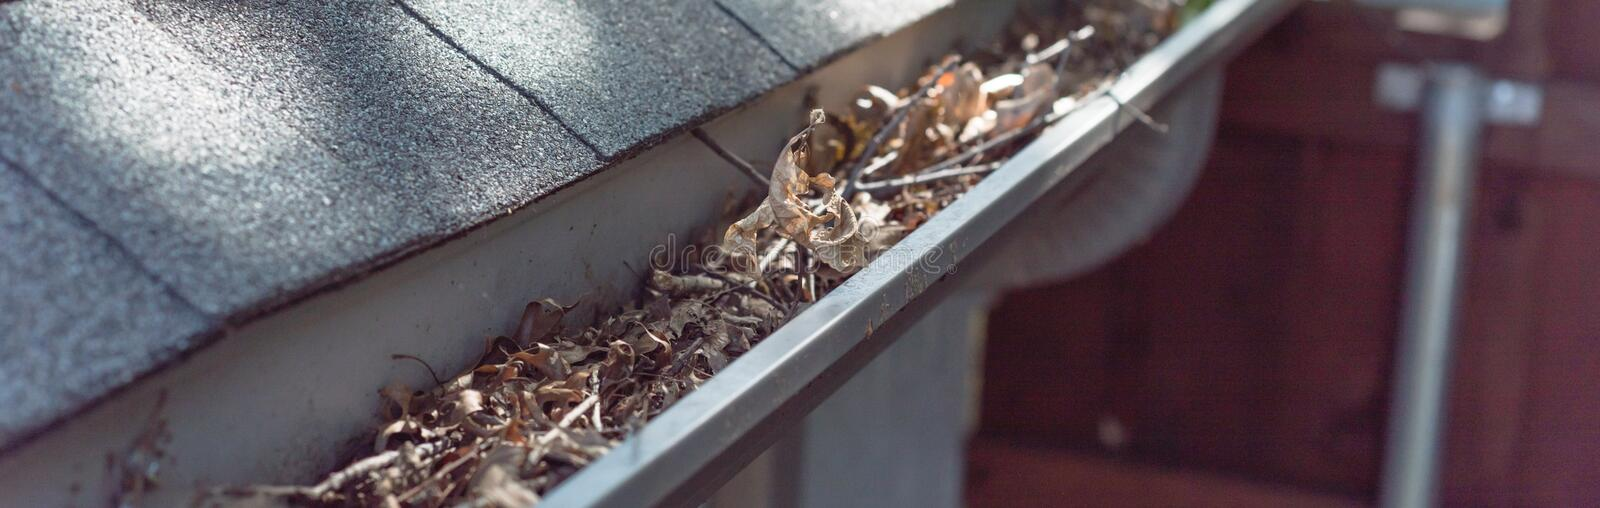 Panoramic gutter clogged by dried leaves and messy dirt need clean-up. Panorama view gutter near roof shingles of residential house full of dried leaves and stock photo